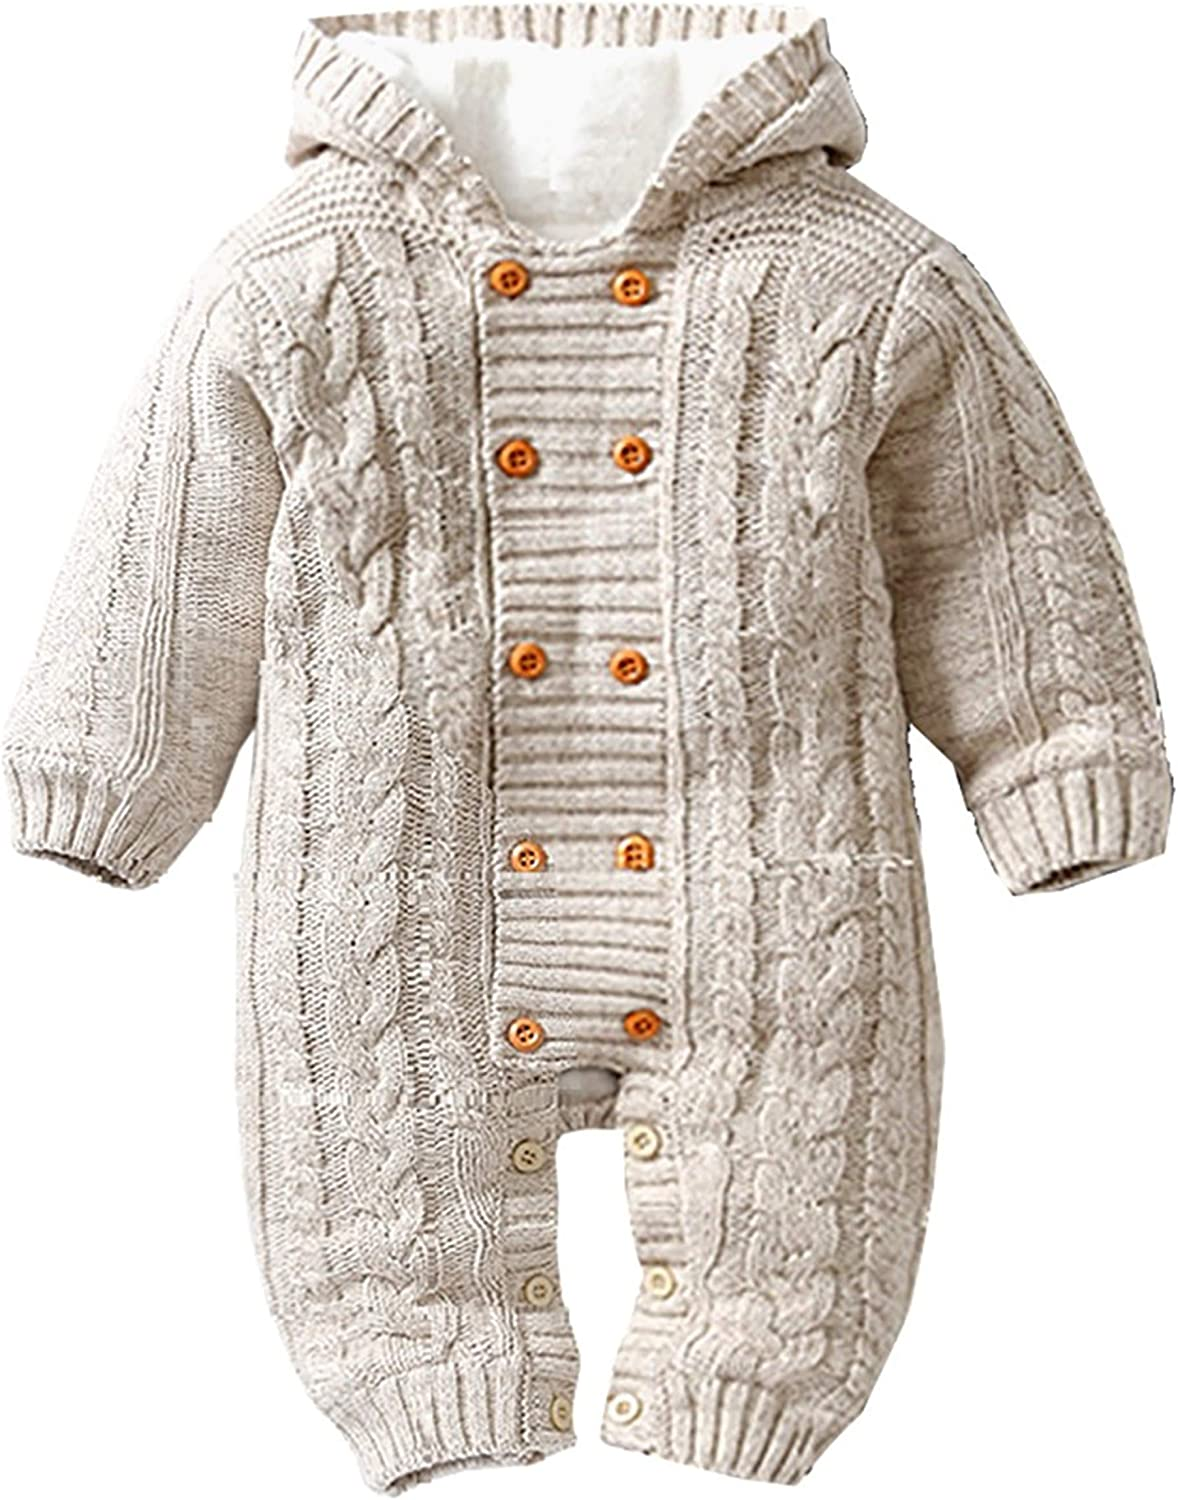 2021 autumn and winter new Newborn Baby Ranking TOP3 Girls Boys Winter Fleece Jumpsuit Thicke Lined Warm